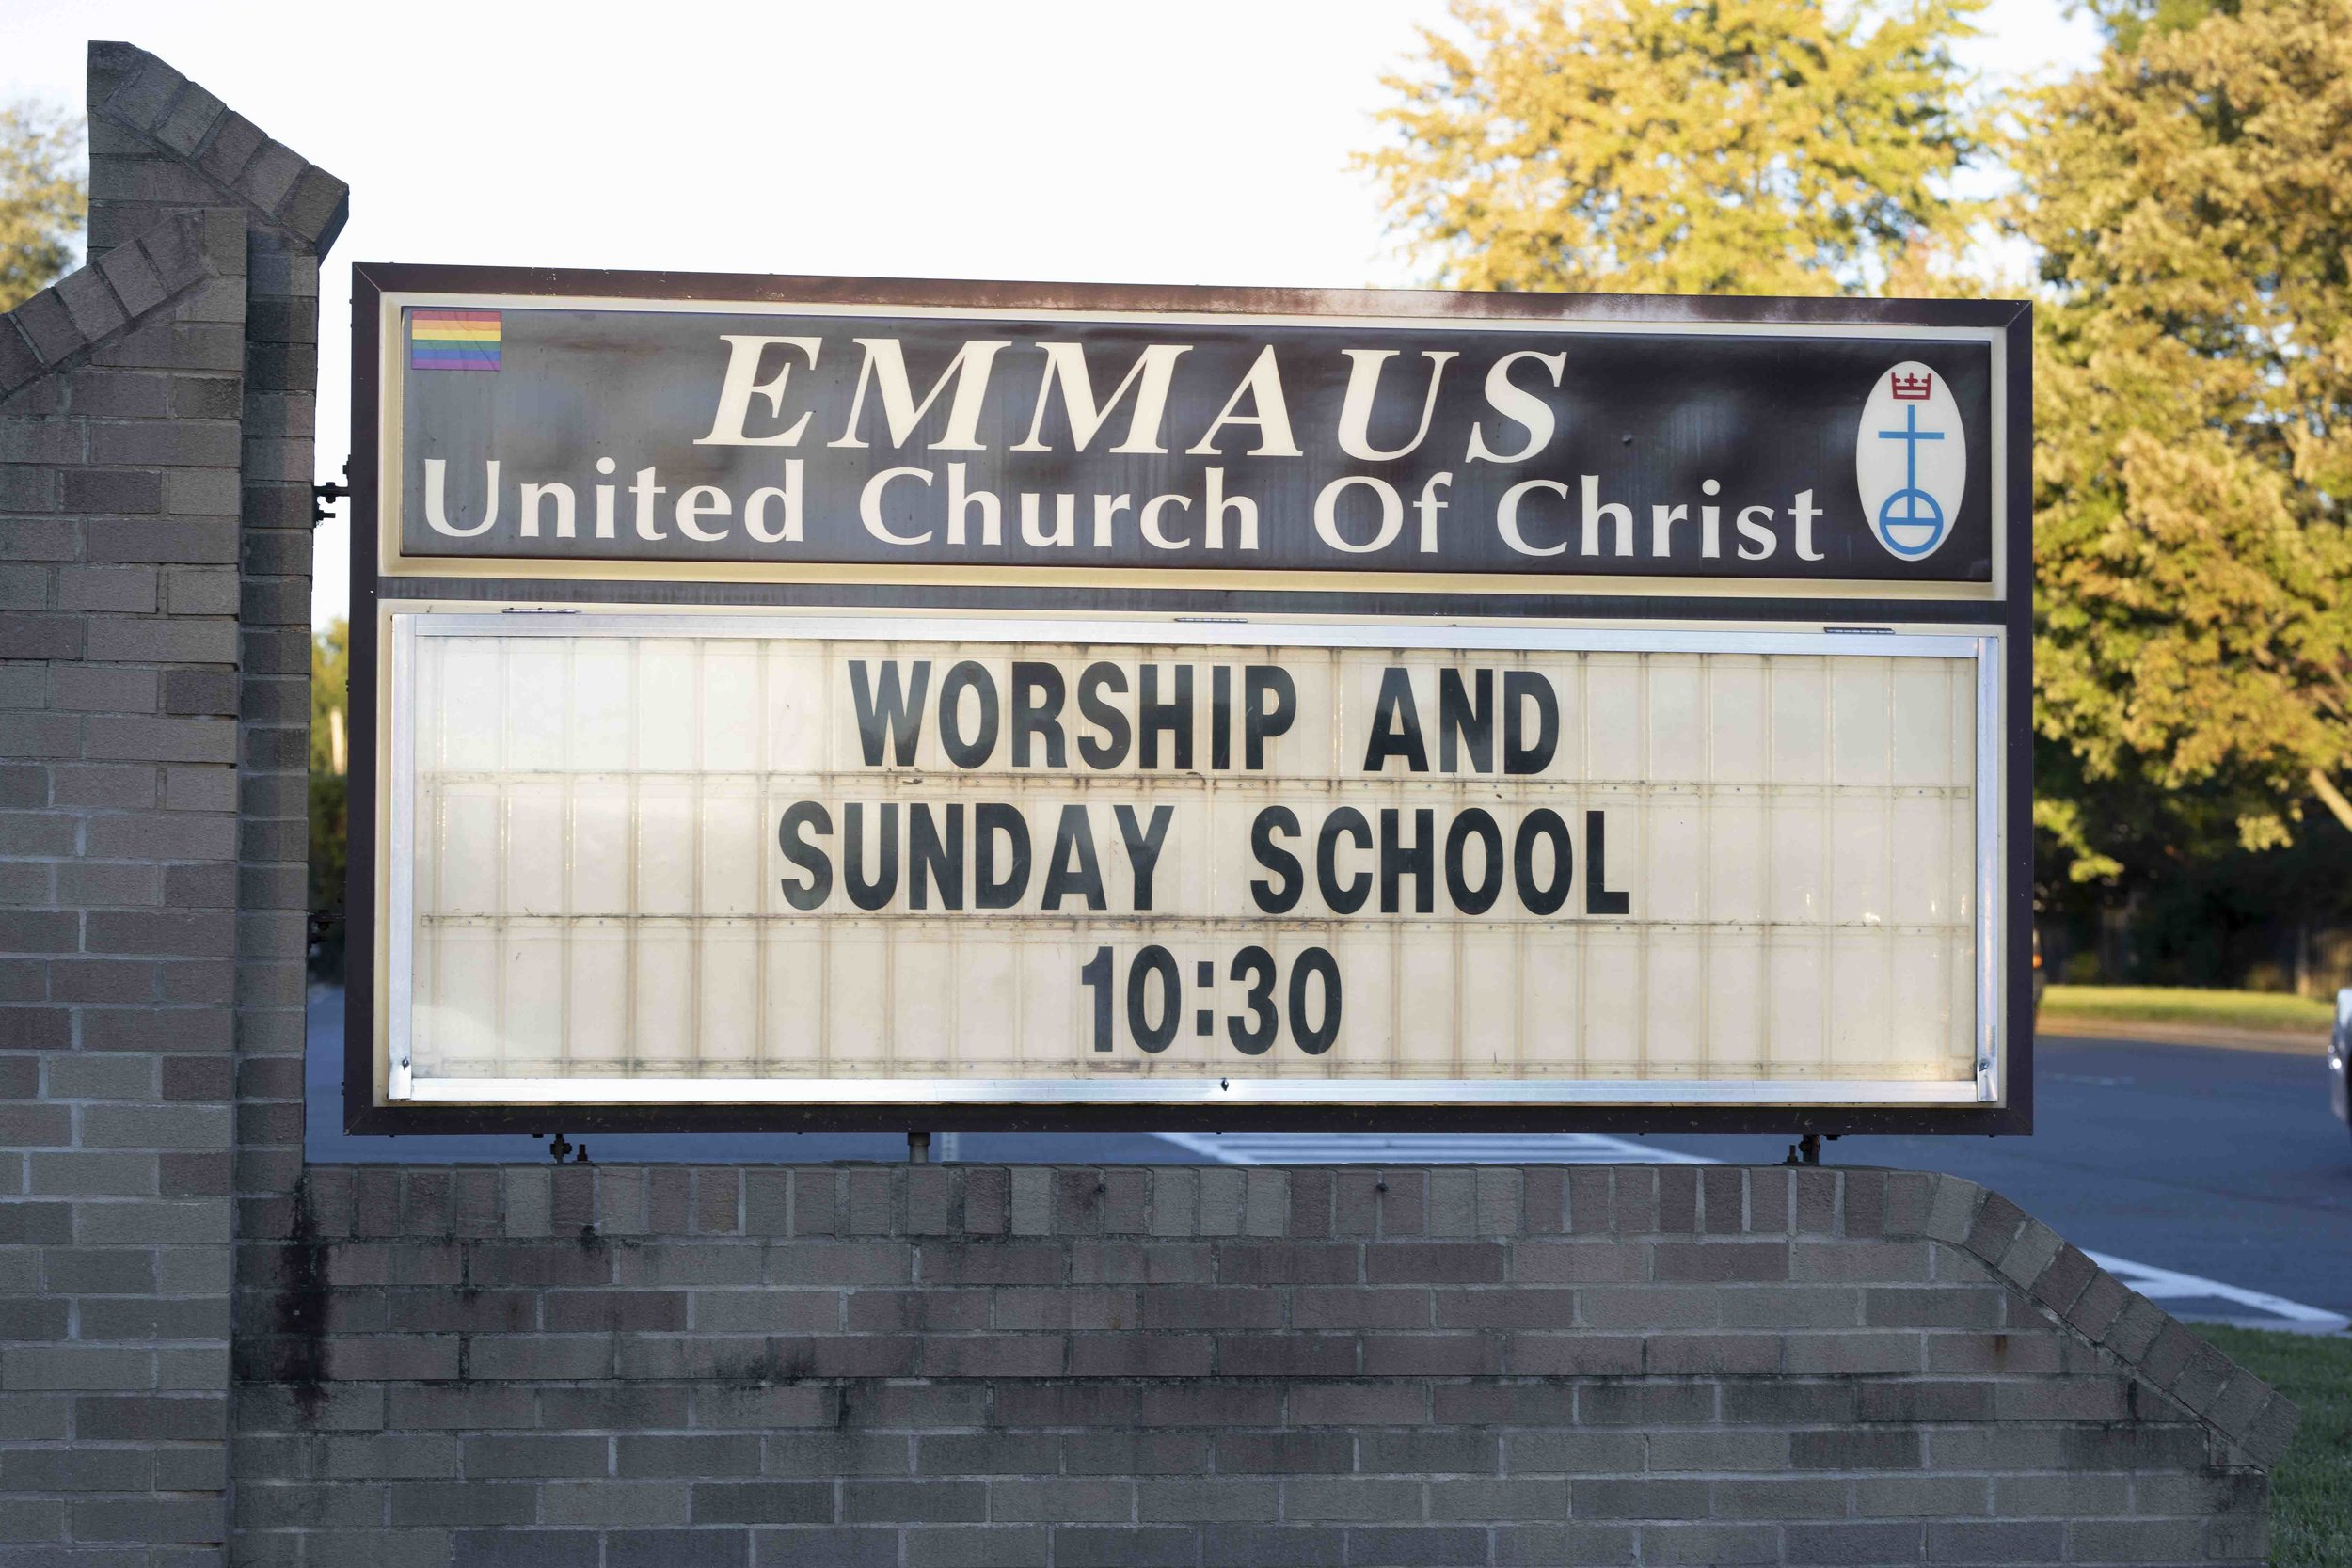 - When is the weekly worship service?The community worships on Sunday mornings at 10:30 a.m. The service usually lasts about 1 hour, and is followed by a time of fellowship with coffee and light refreshments.What is Emmaus' phone number?Emmaus' phone number is (703) 938-1555. Church Office hours are Tuesday, Wednesday and Thursday 9:30 a.m. - 2:30 p.m.